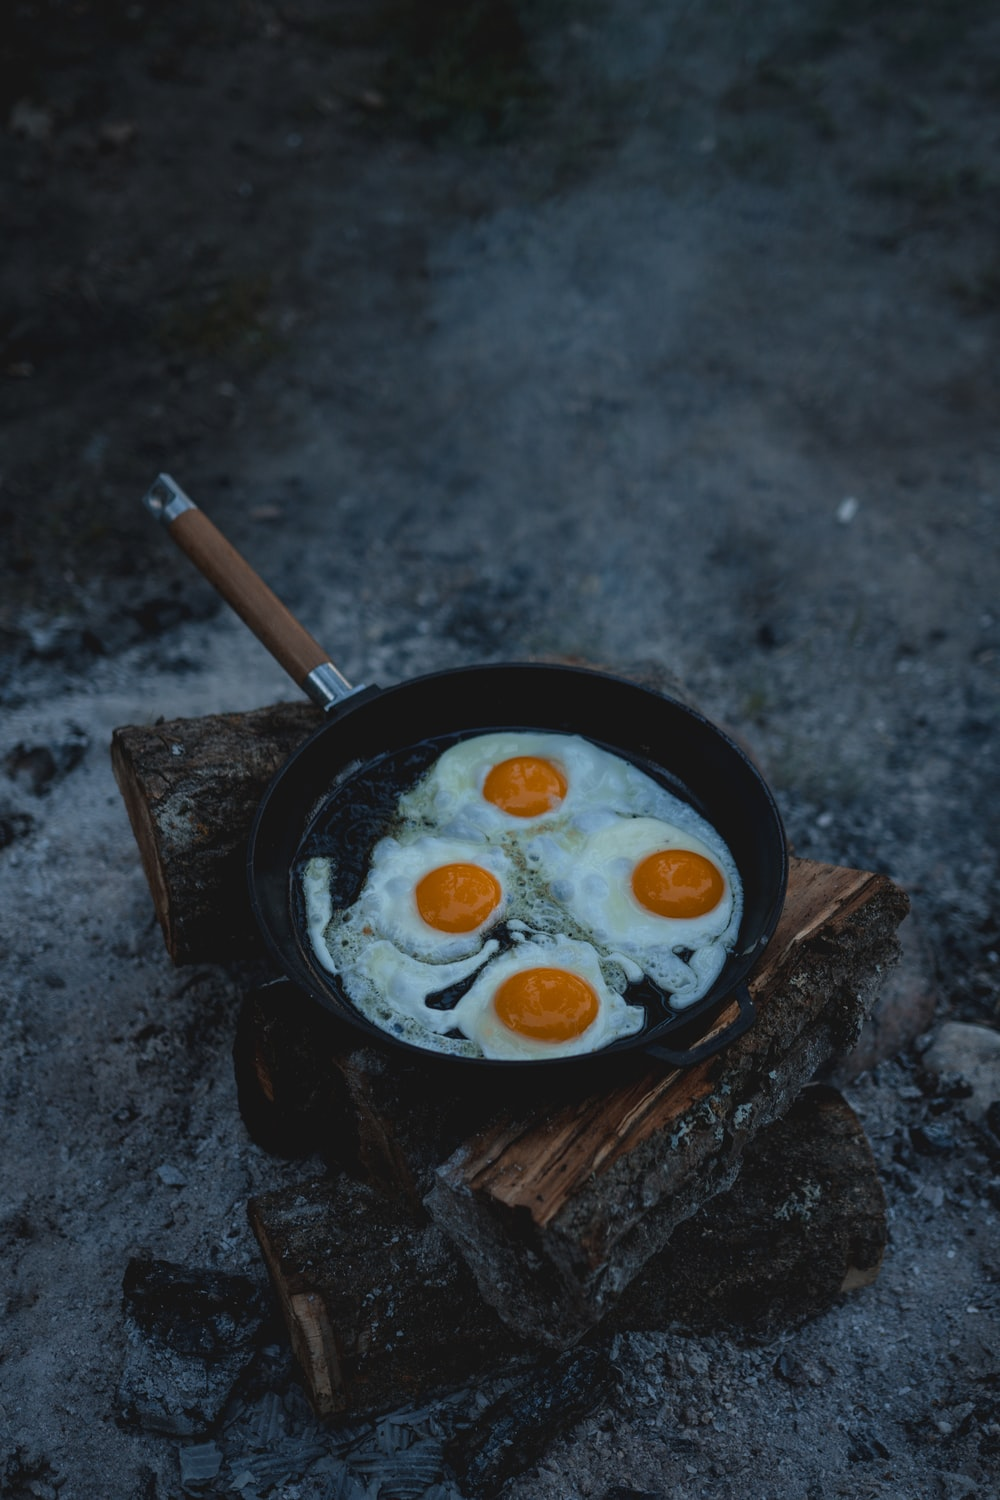 black frying pan with white cream and brown wooden stick